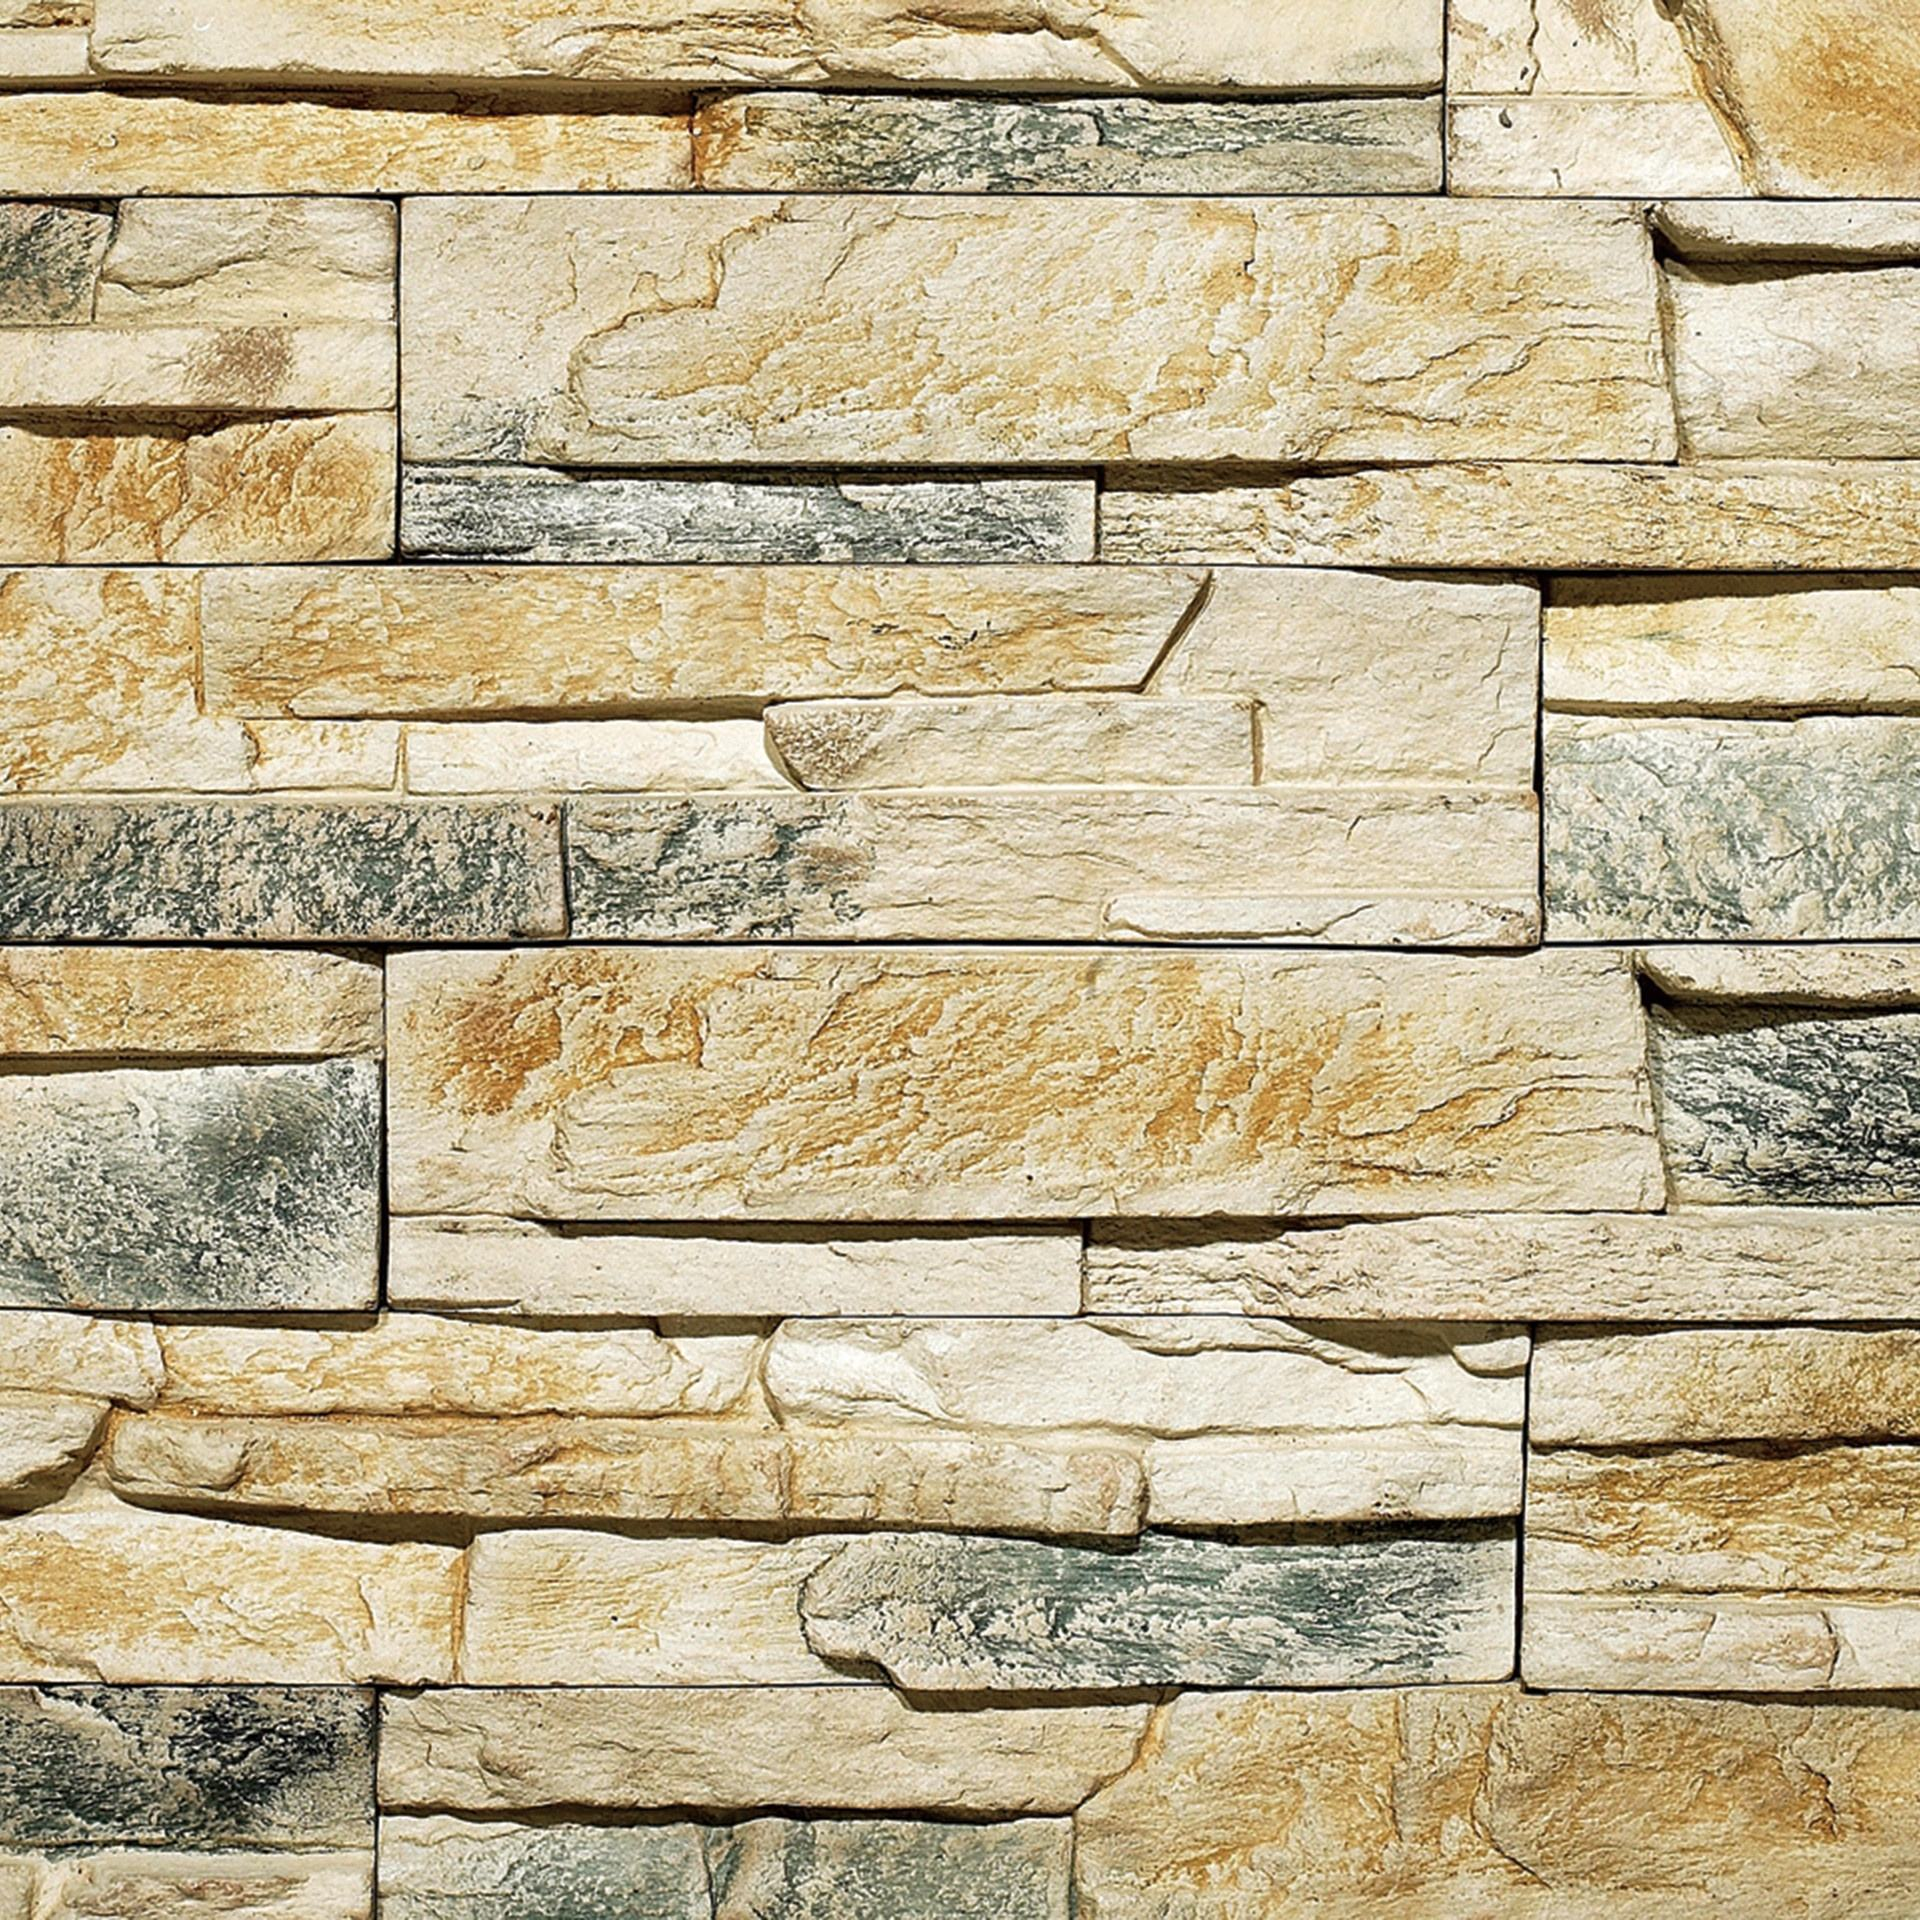 Natural Cheap Castle Stone Siding Exterior Stone Wall Cladding 3D Faux Decorative Panel Artificial Culture Stone Veneer for garden